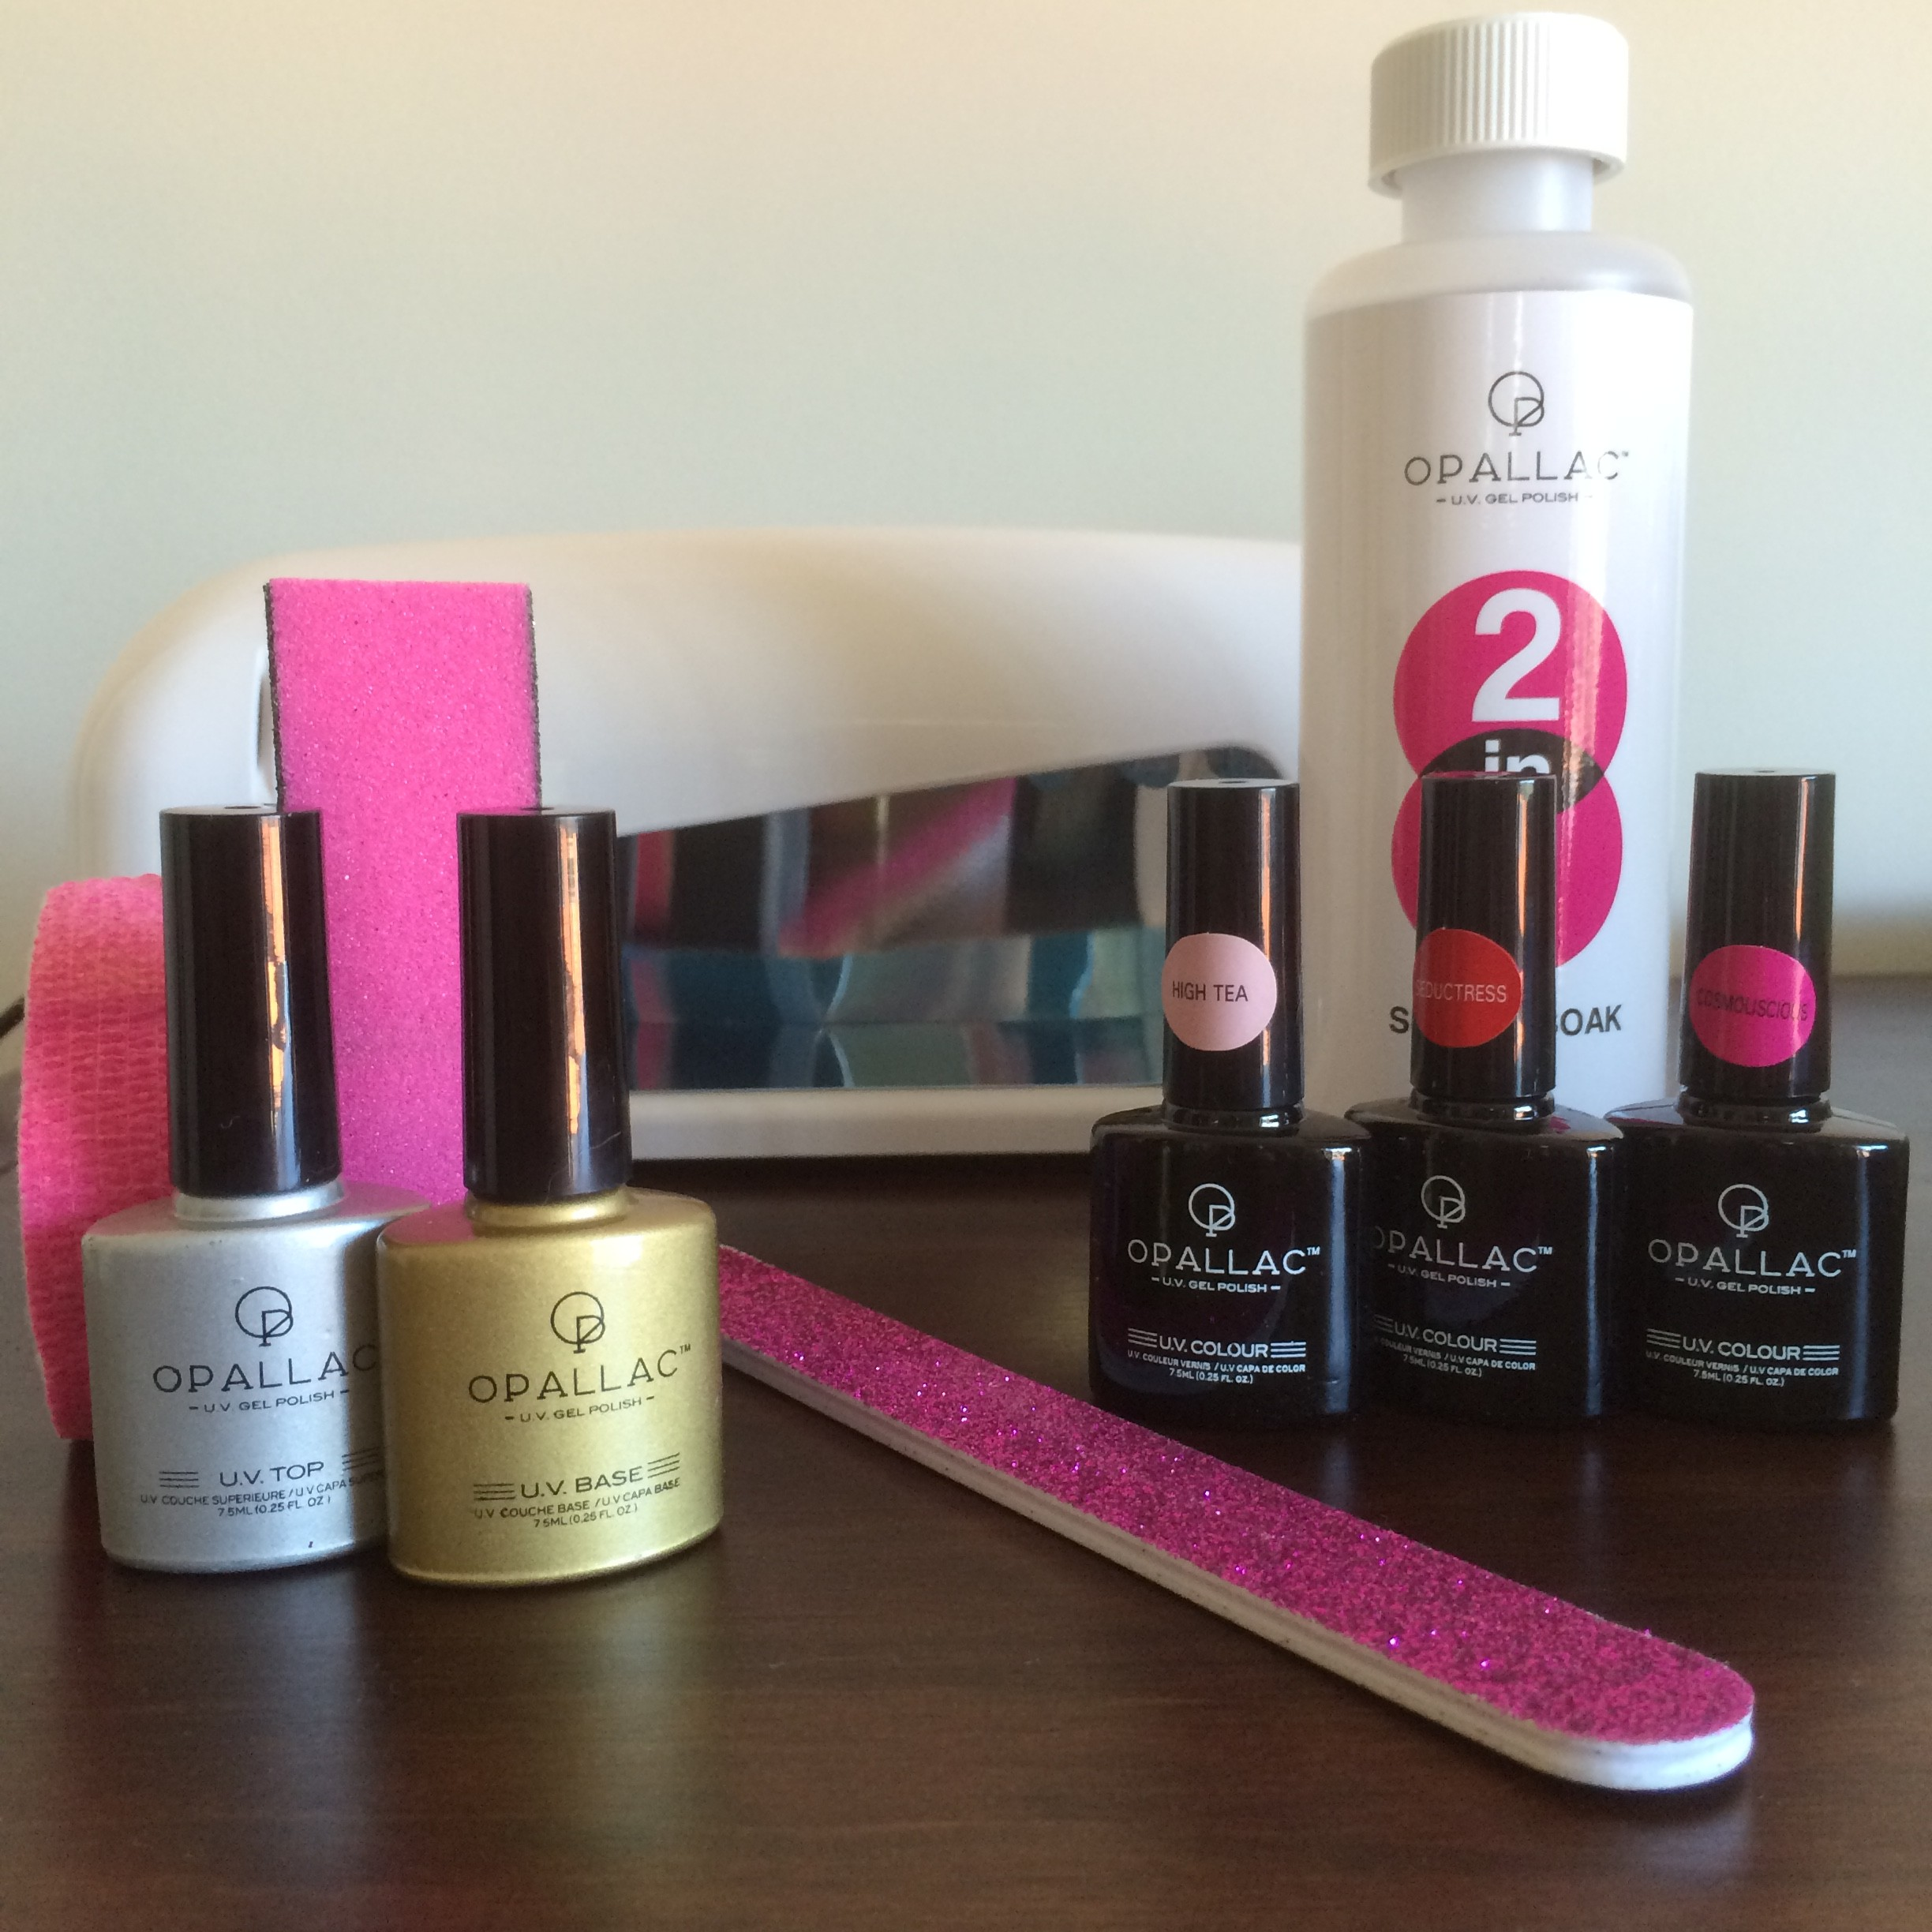 Gel nails at home with Opallac